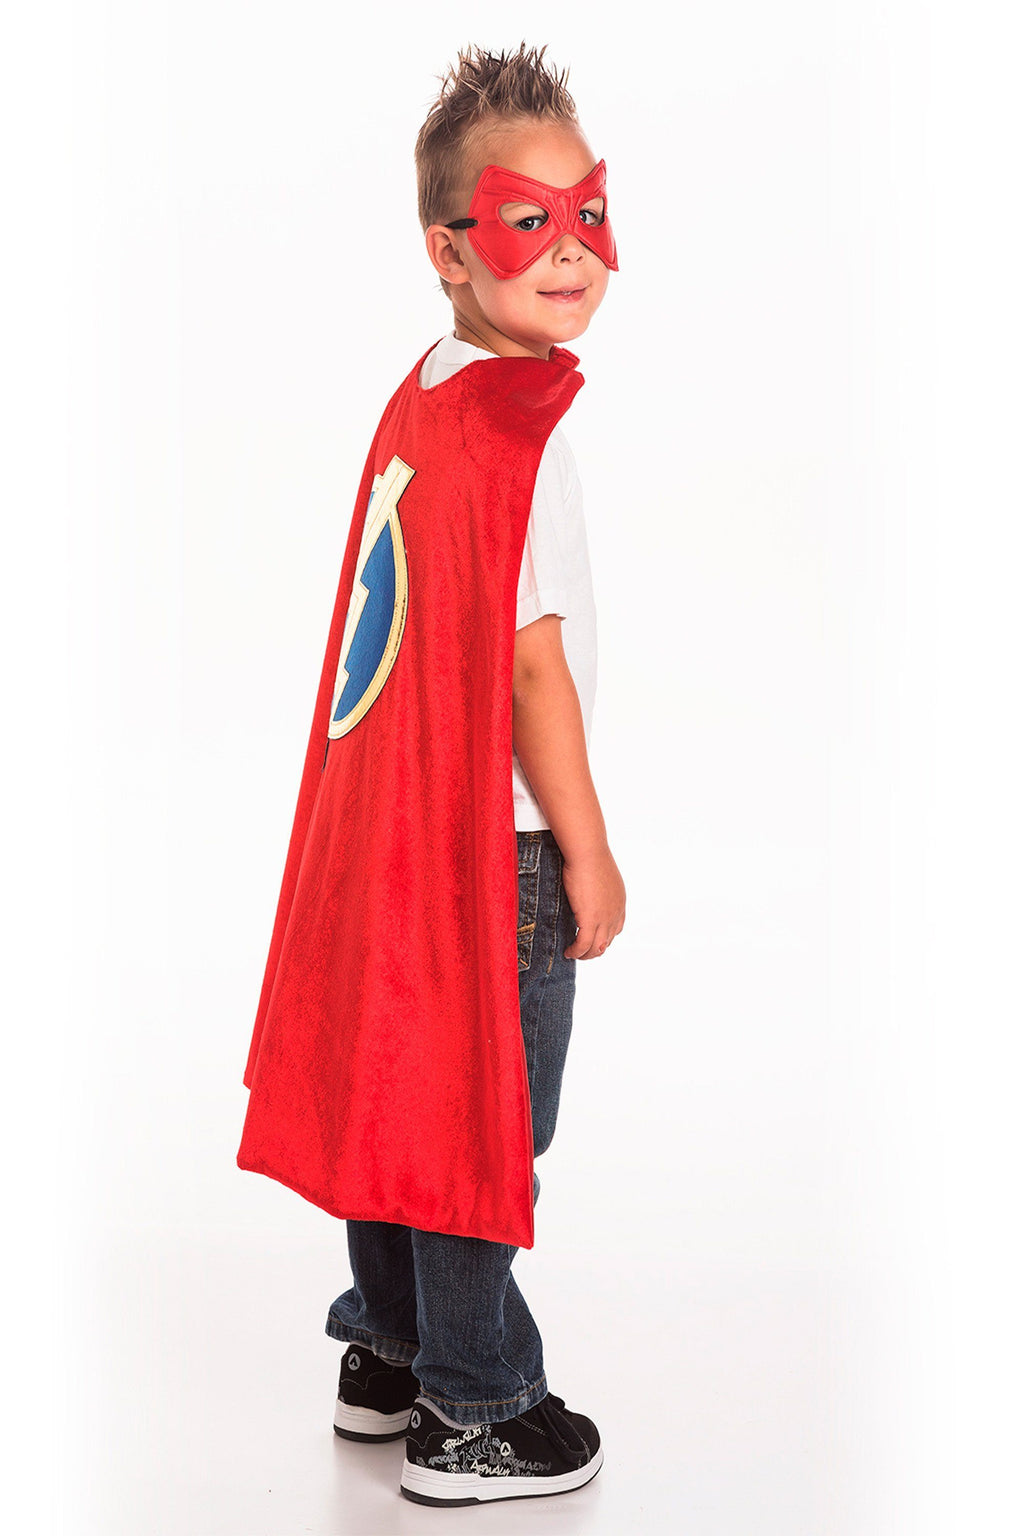 The Cape & Mask Sets - Red Hero Cape & Mask Set